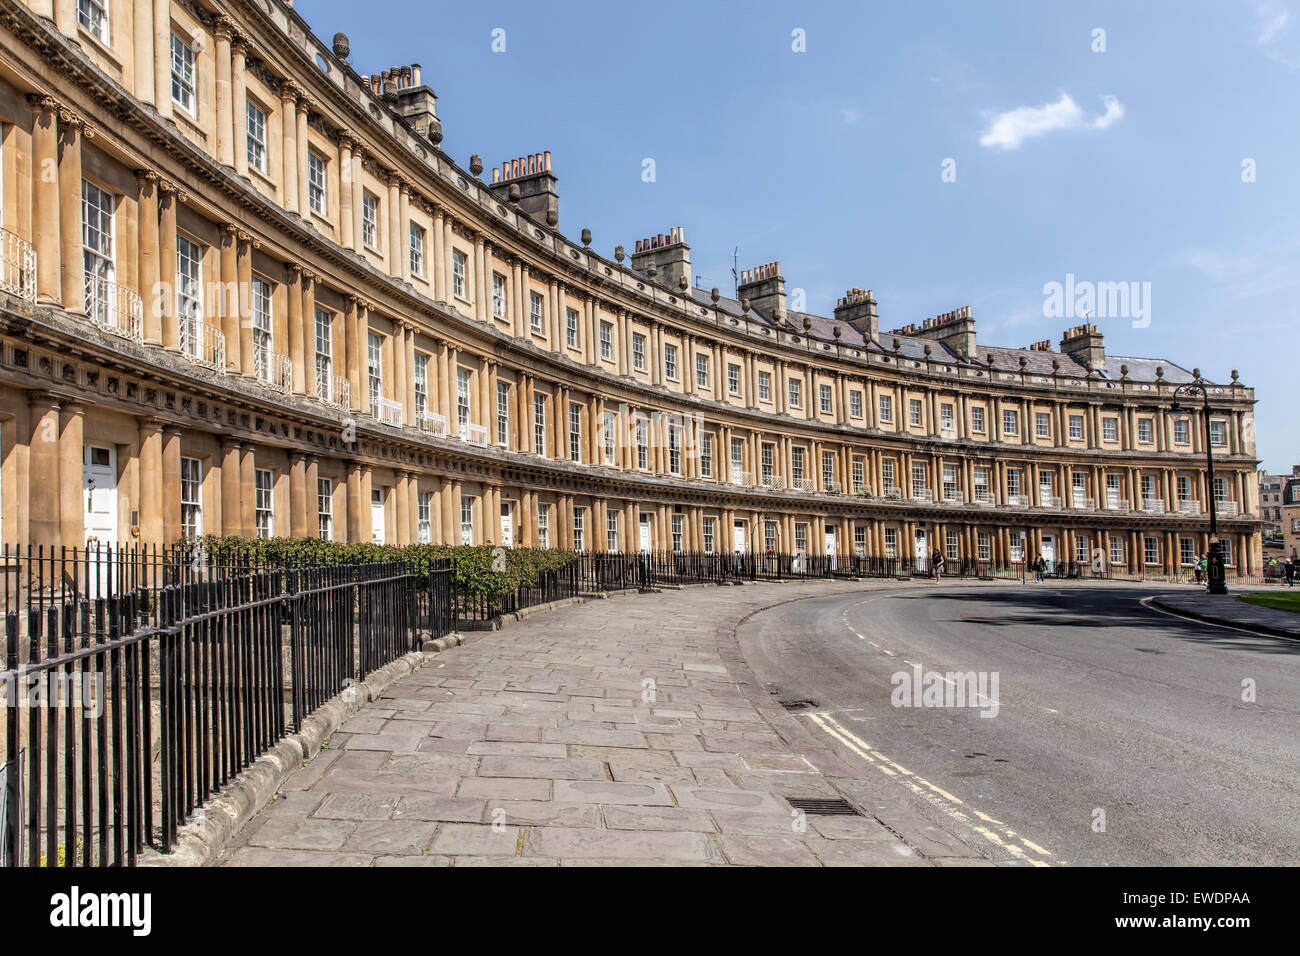 Section of Georgian houses in The Circle in Bath - Stock Image